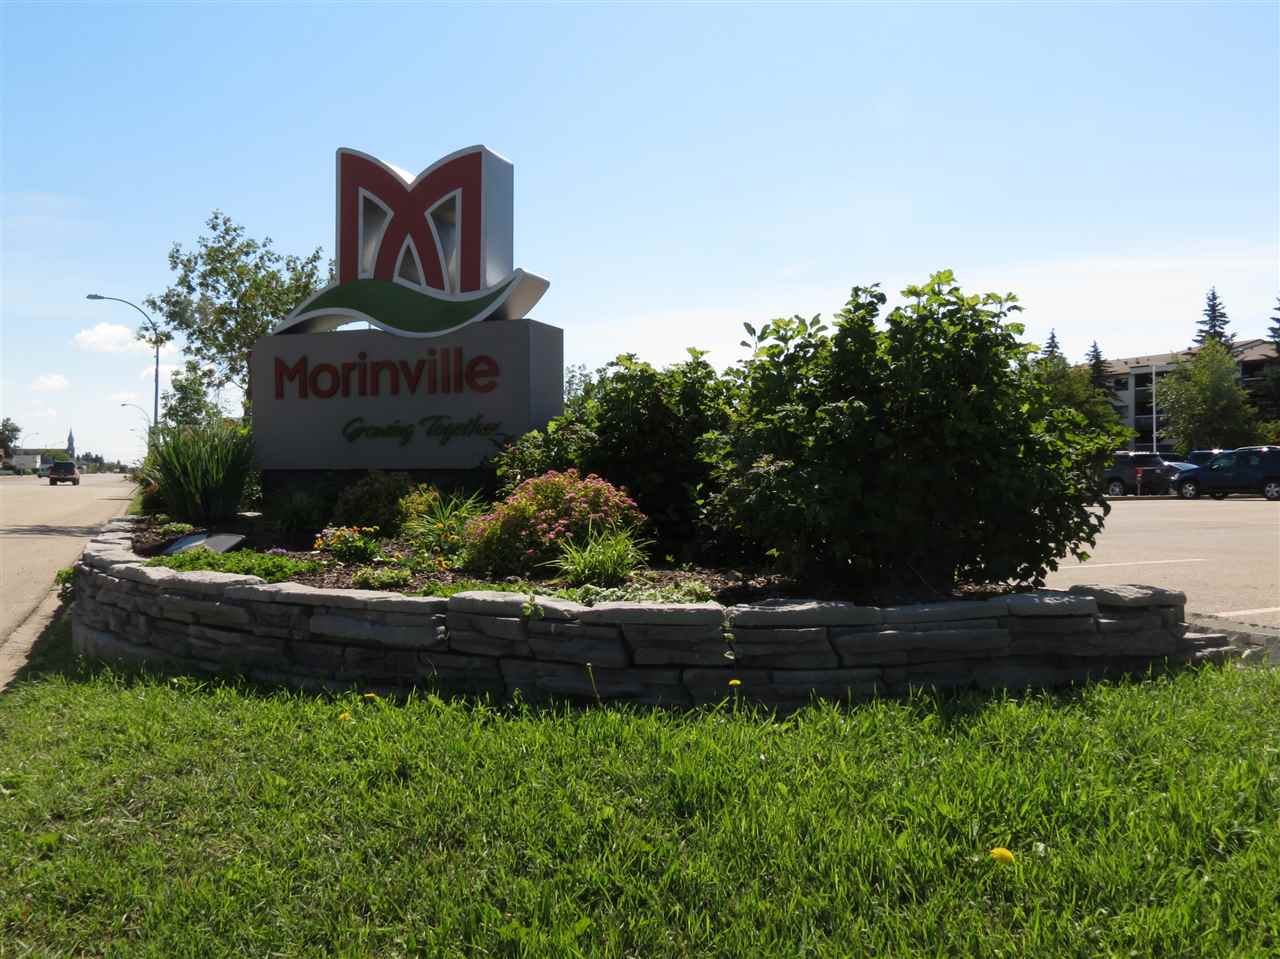 Photo 10: 106 9910 107 Street: Morinville Condo for sale : MLS(r) # E4040993